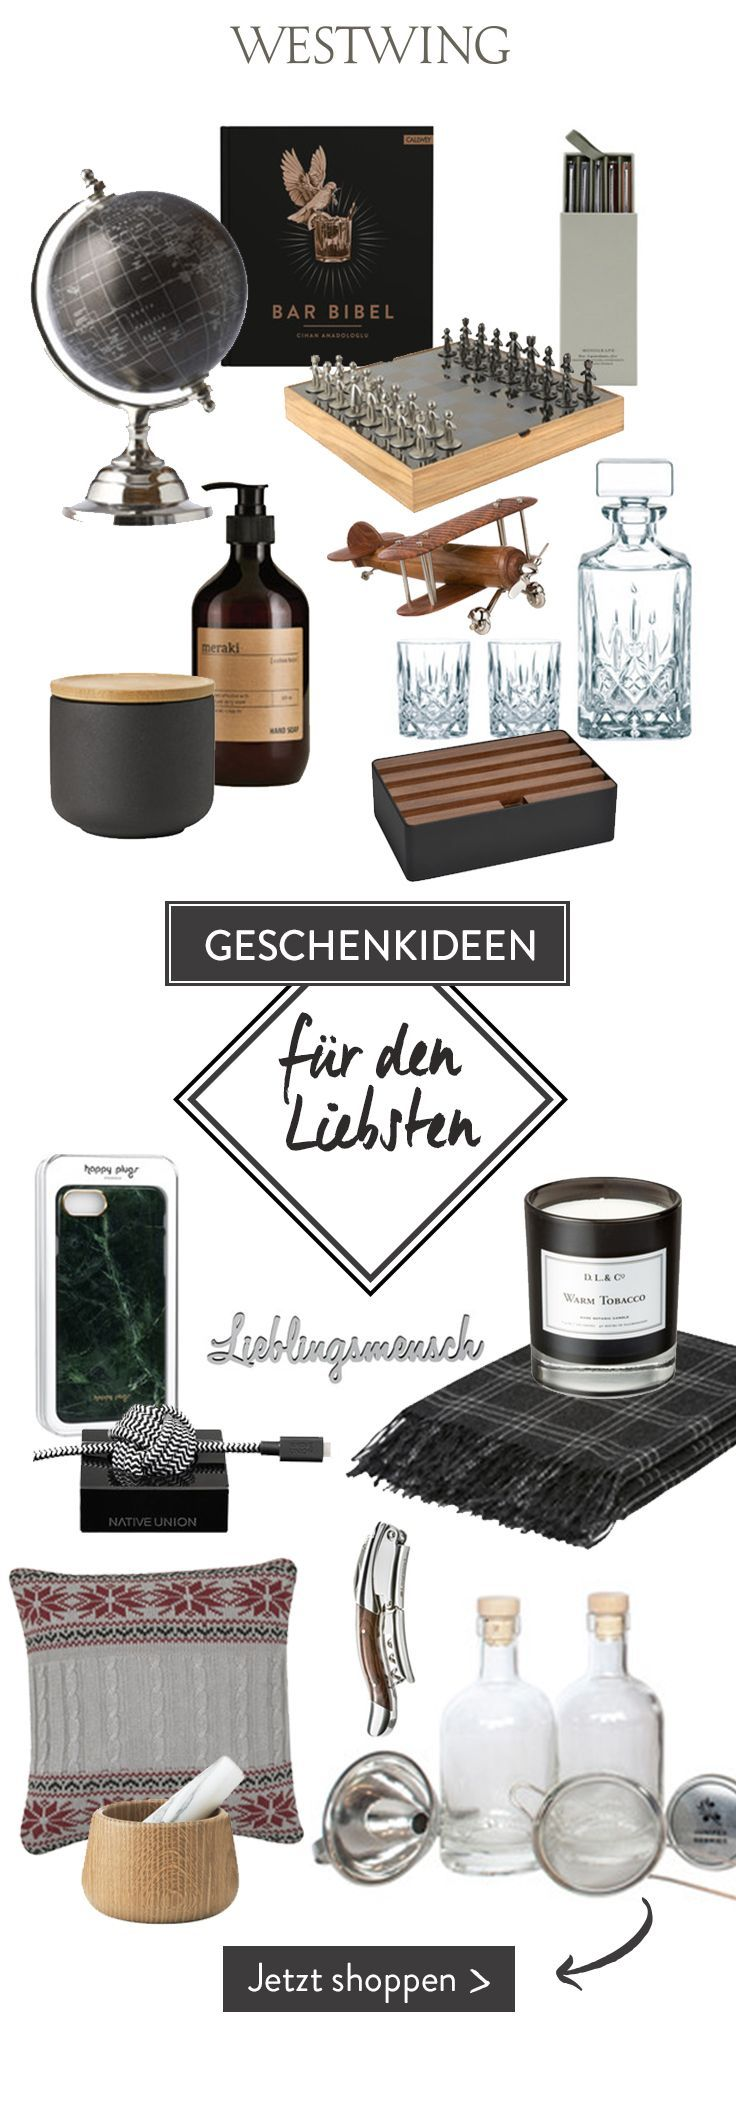 geschenke f r den liebsten ideen die m nnerherz den. Black Bedroom Furniture Sets. Home Design Ideas